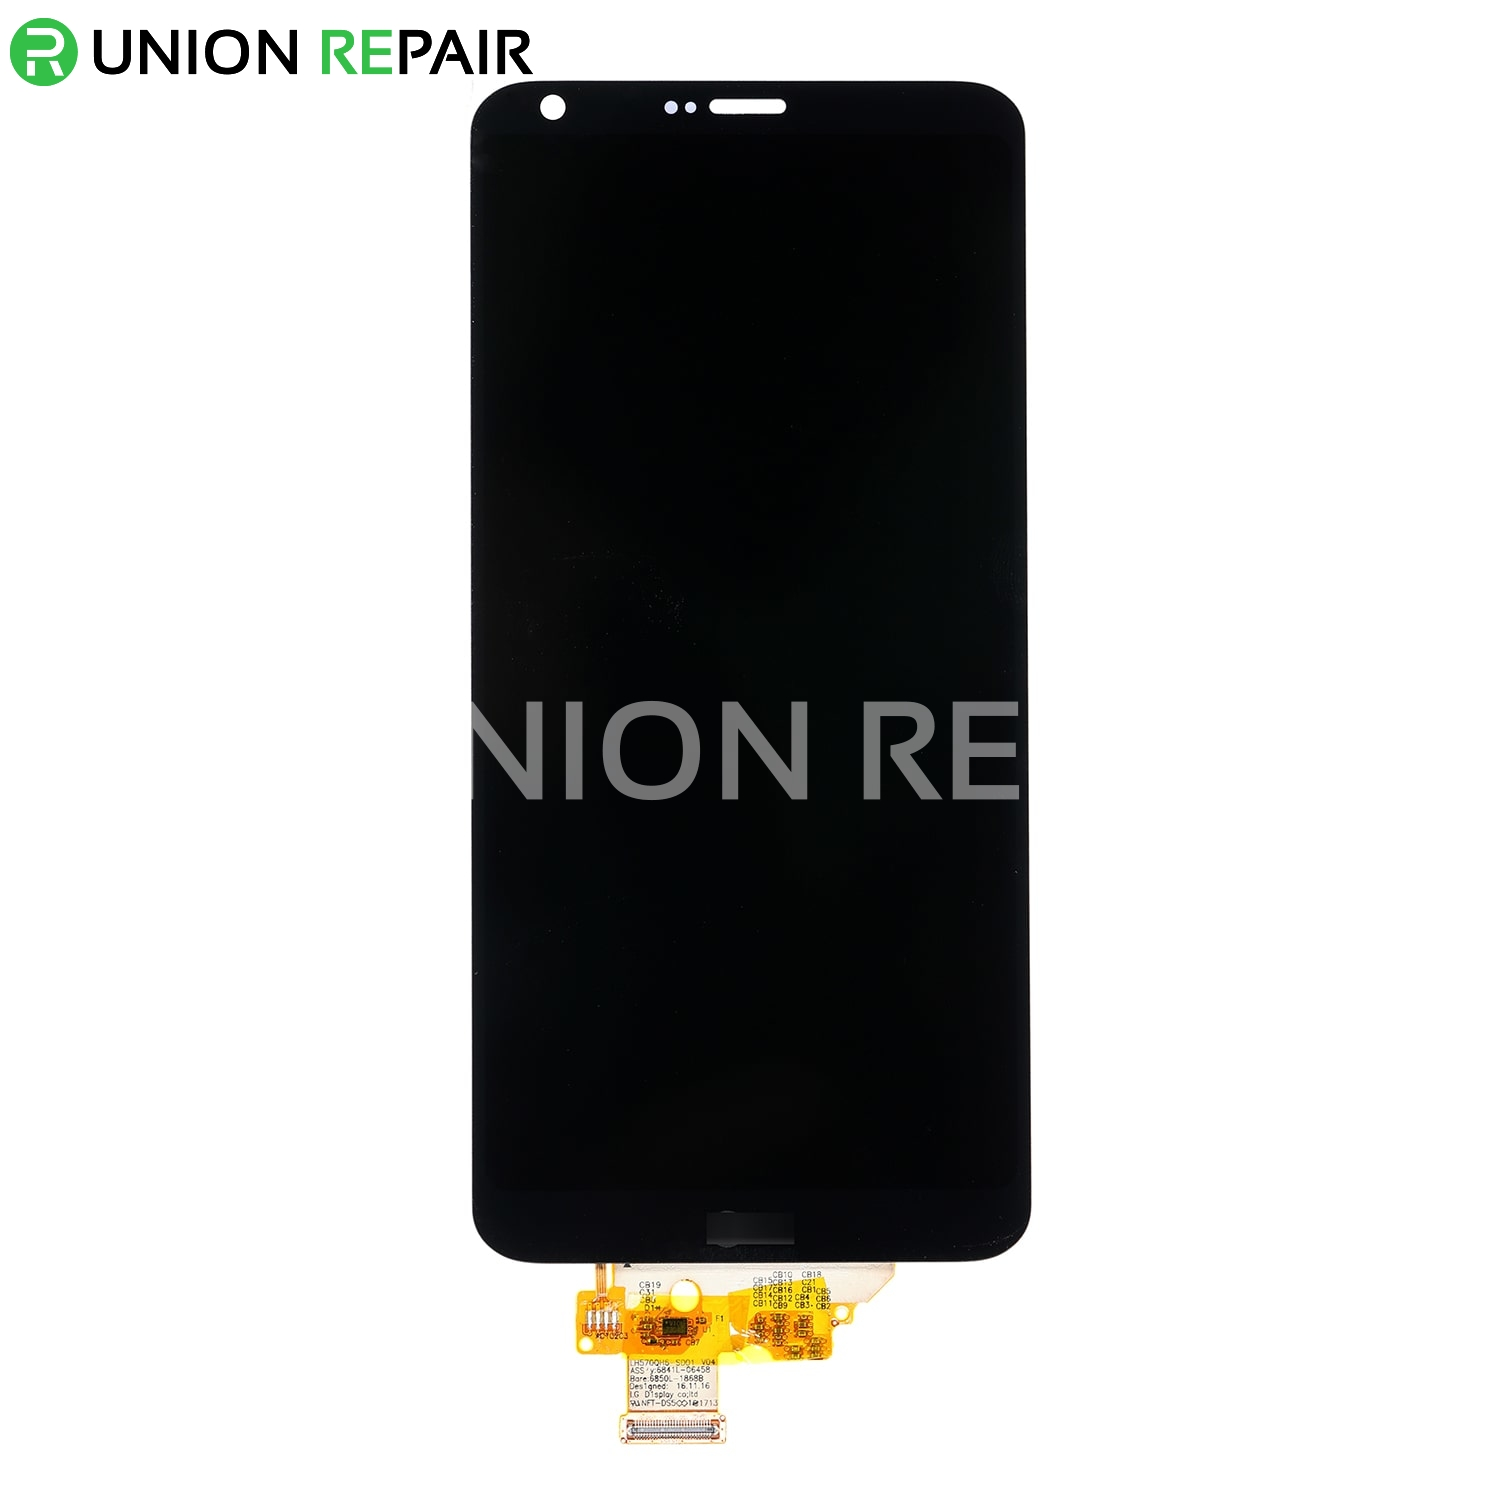 Replacement for LG G6 LCD Screen with Digitizer Assembly - Black